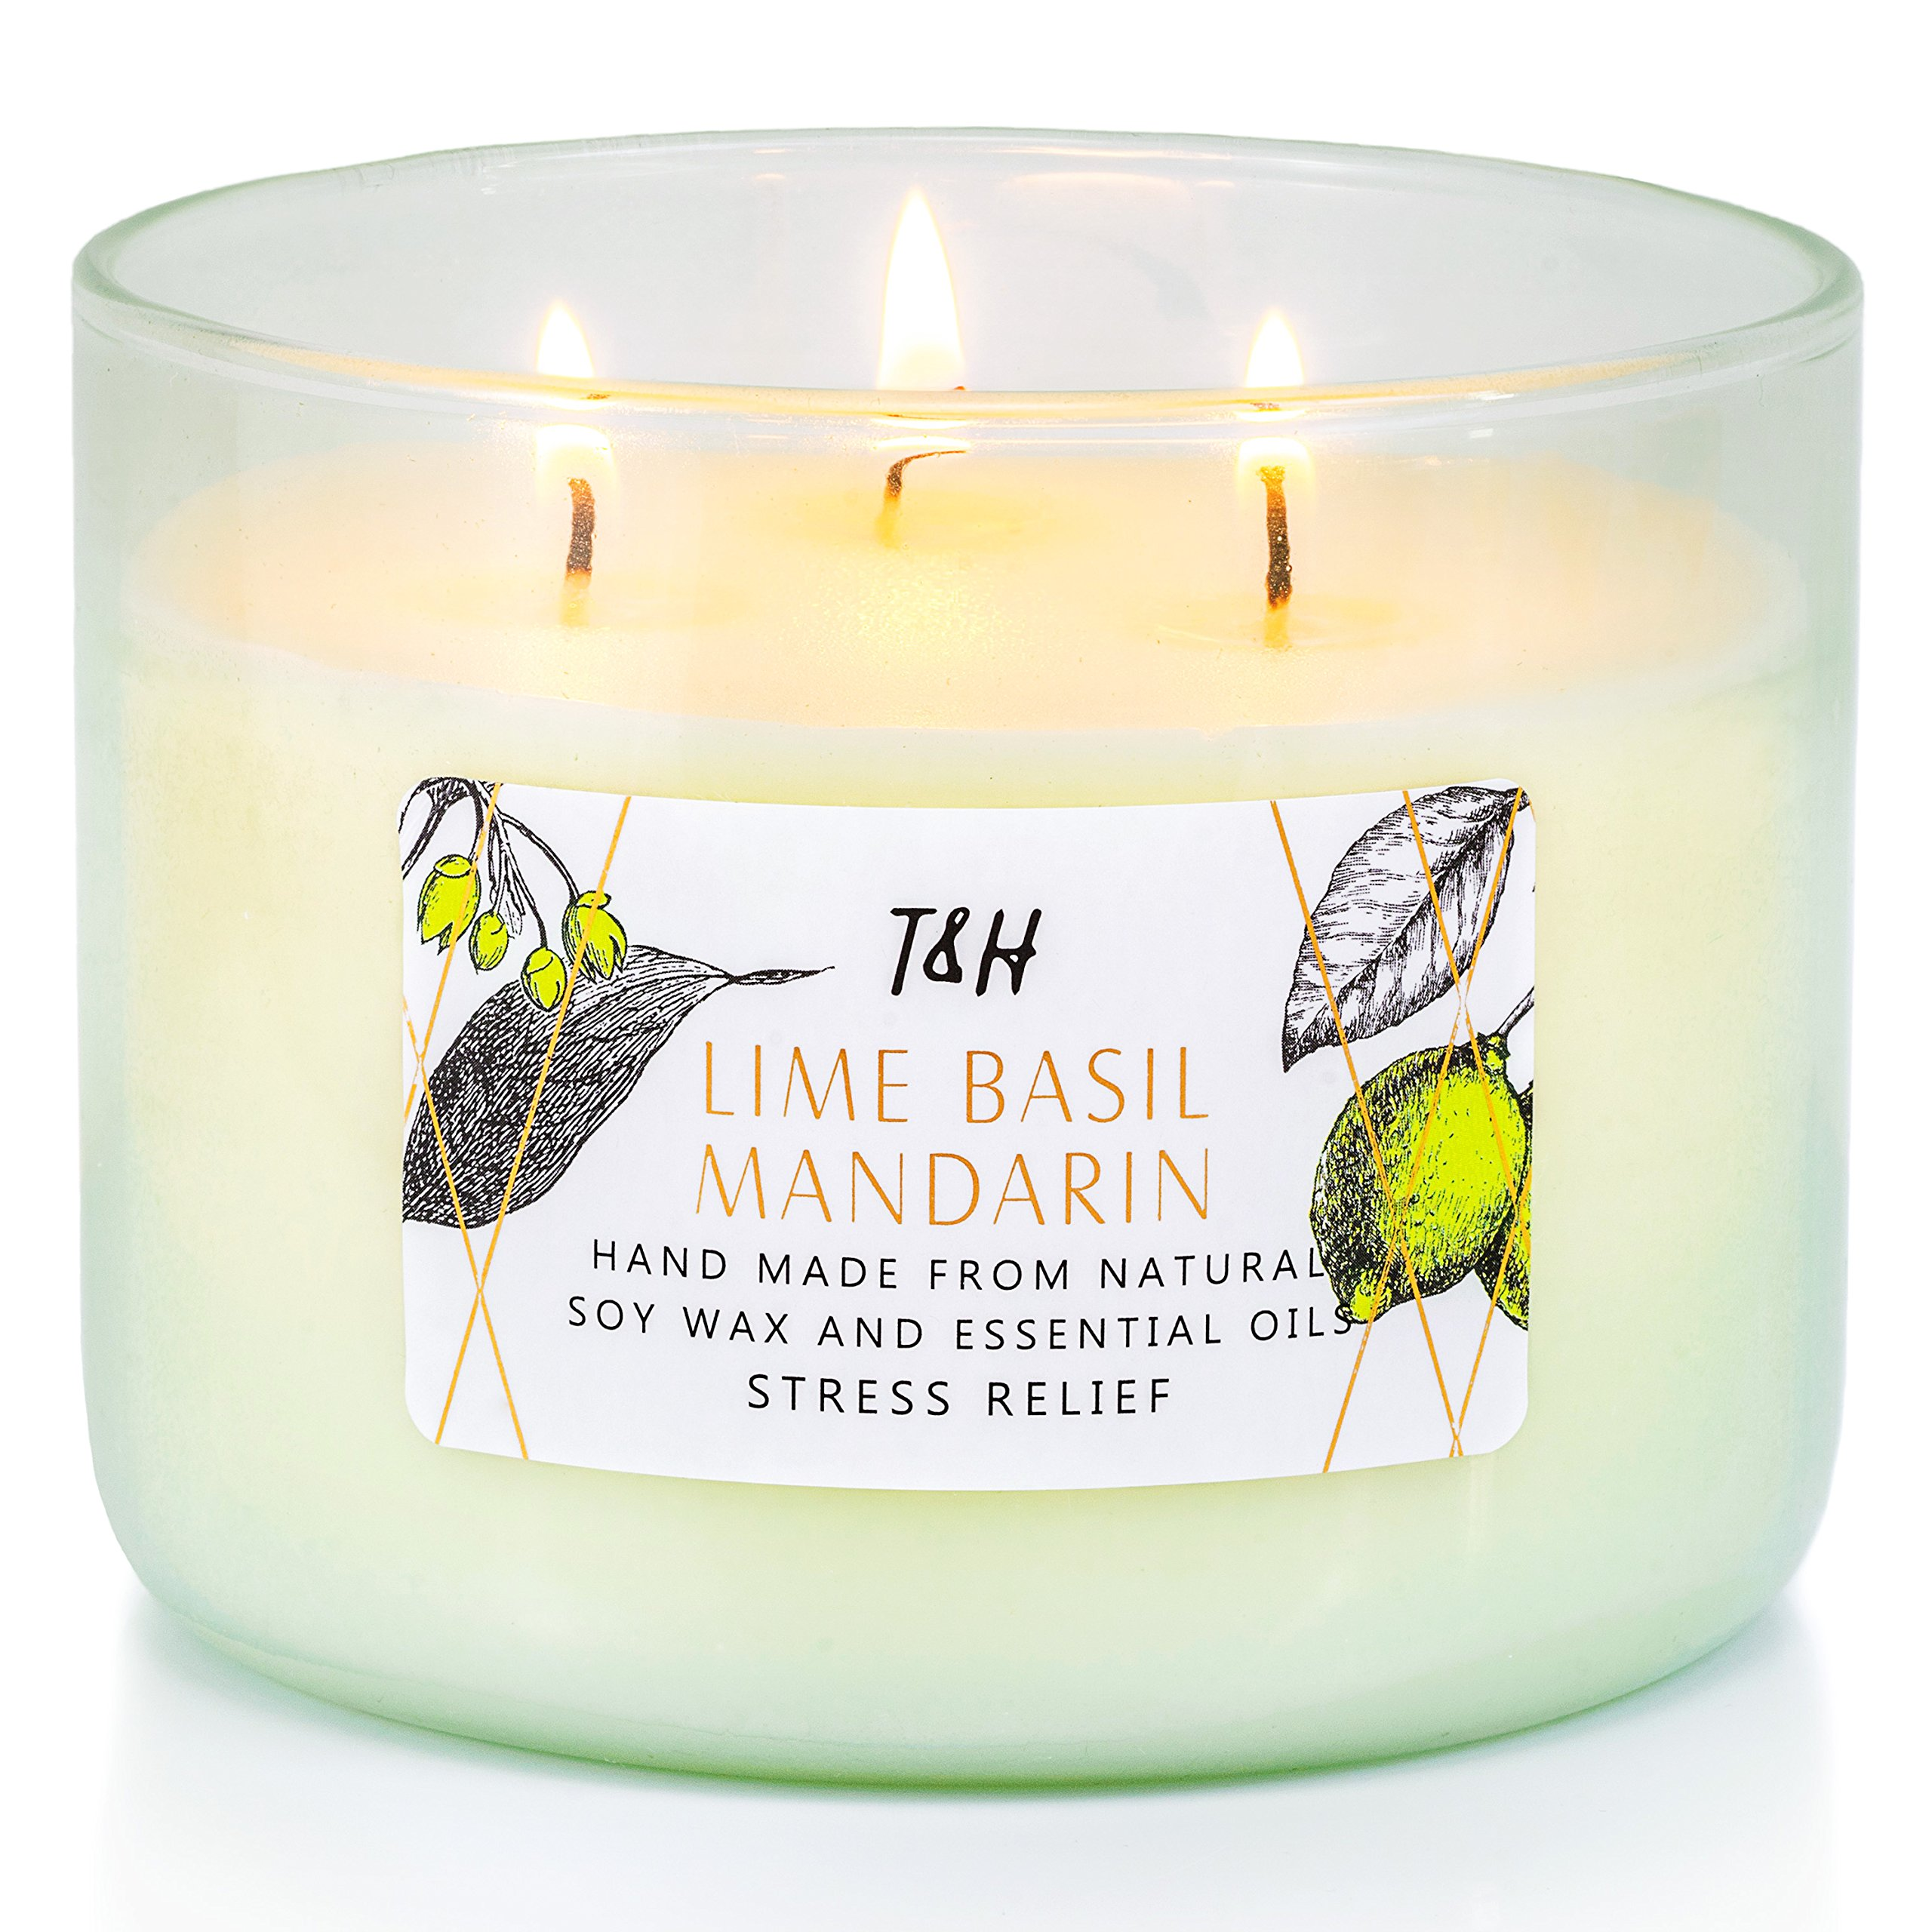 T & H Aromatherapy Stress Relief 3-Wick Natural Soy Wax Lime Basil Mandarin Candle